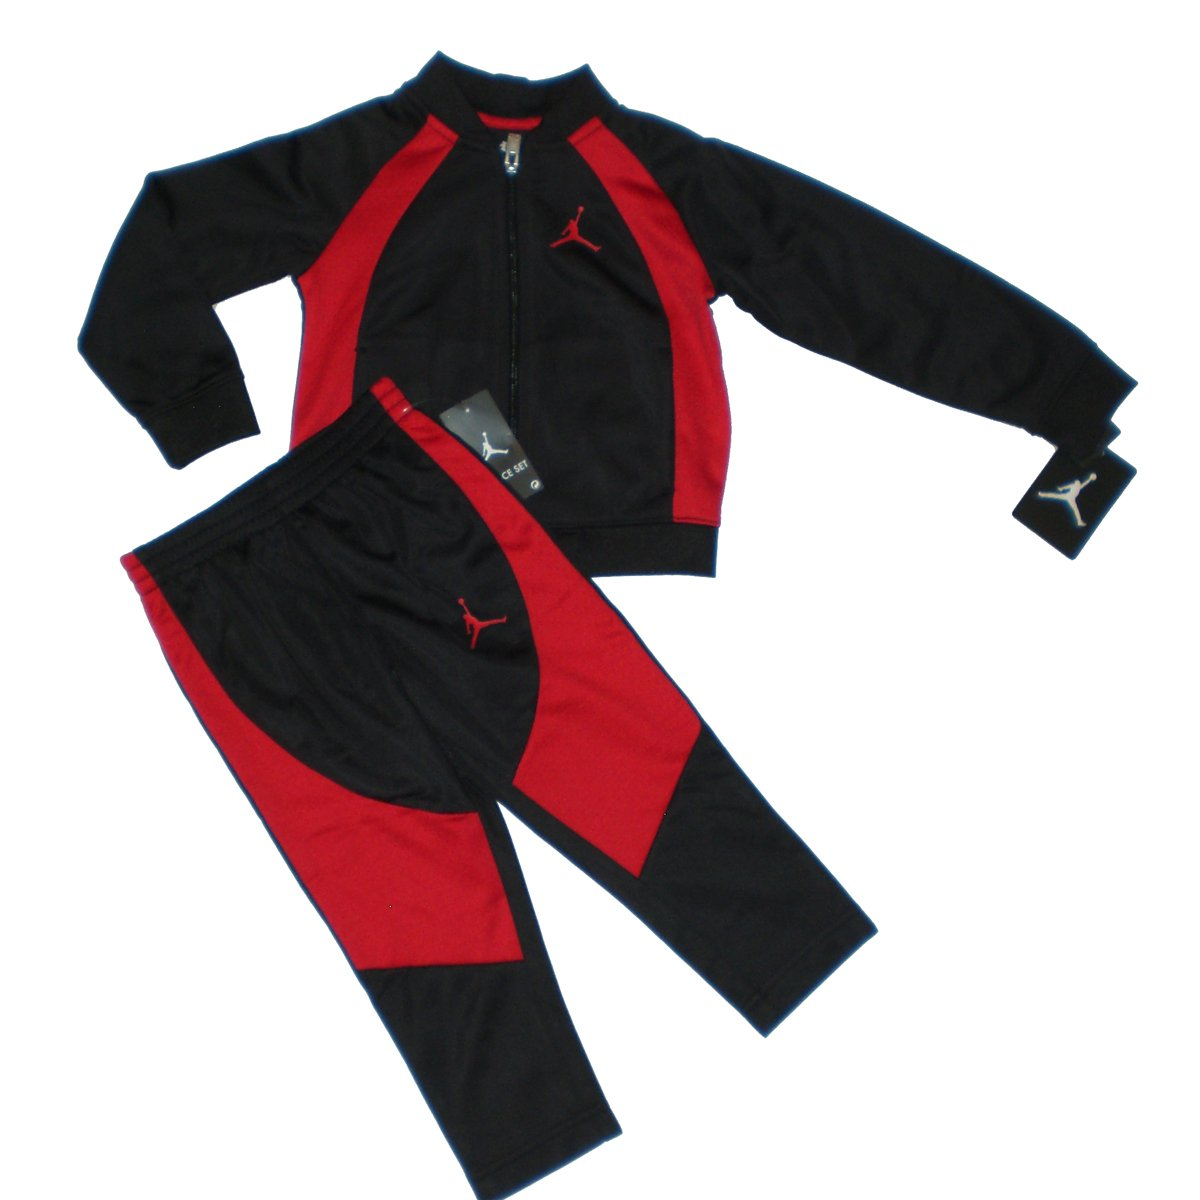 Jordan Little Boys' Jumpman Jacket Tracksuit Pants Outfit Set, Size 6 by Jordan